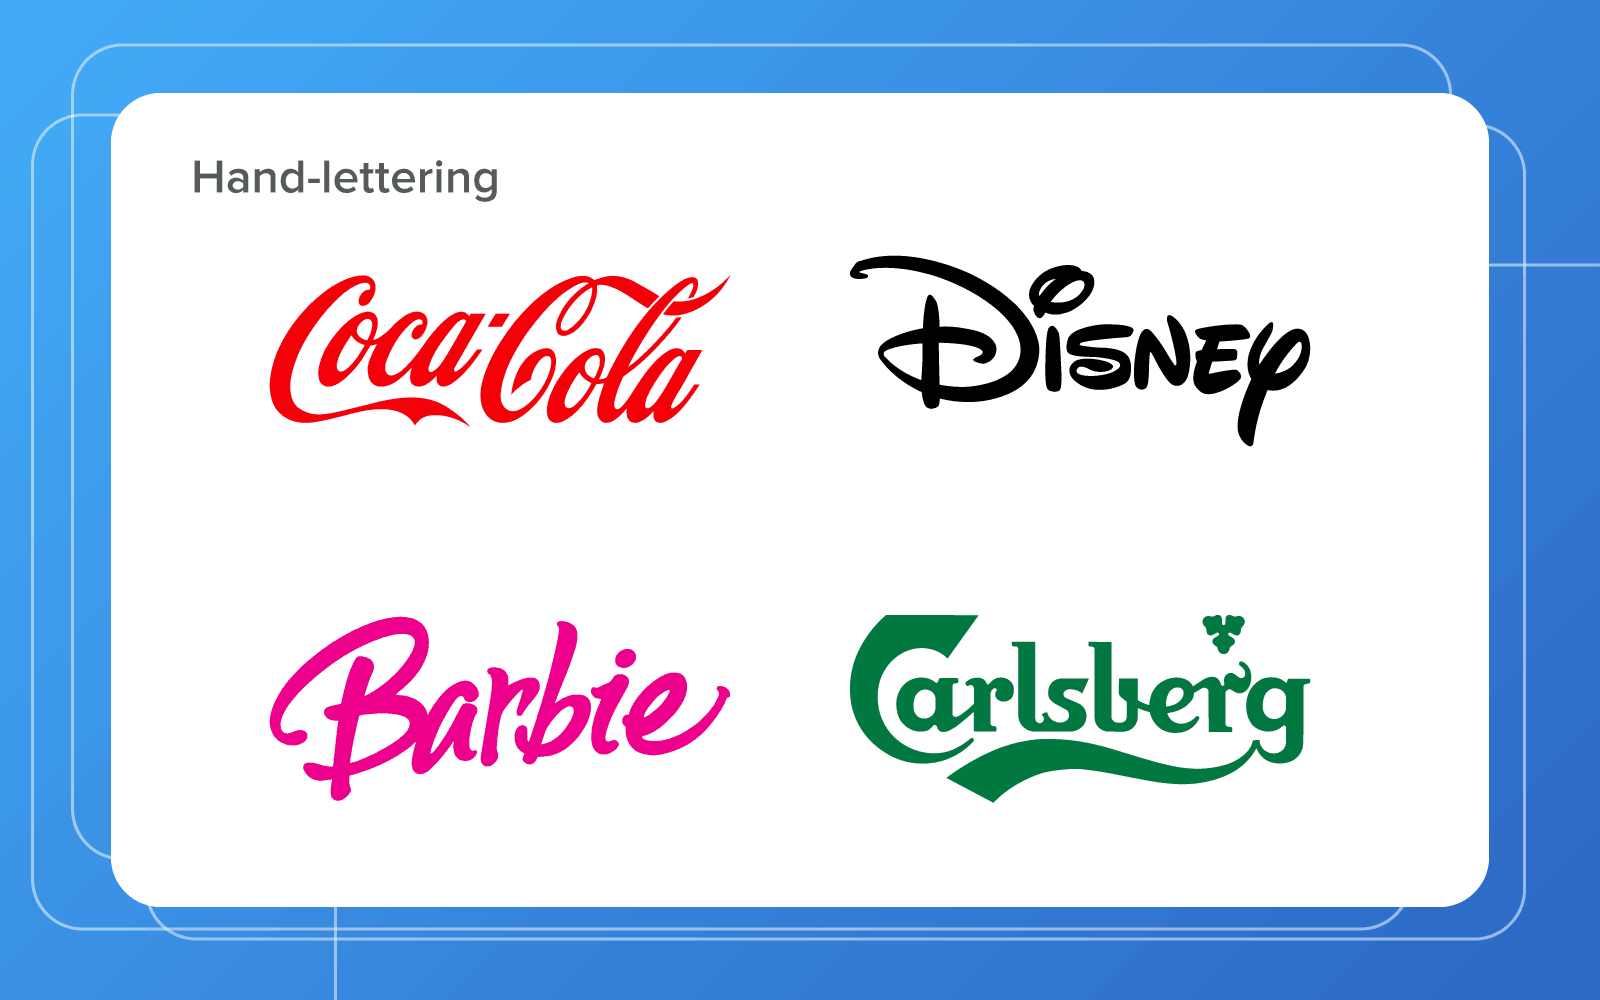 famous hand-lettered logo designs